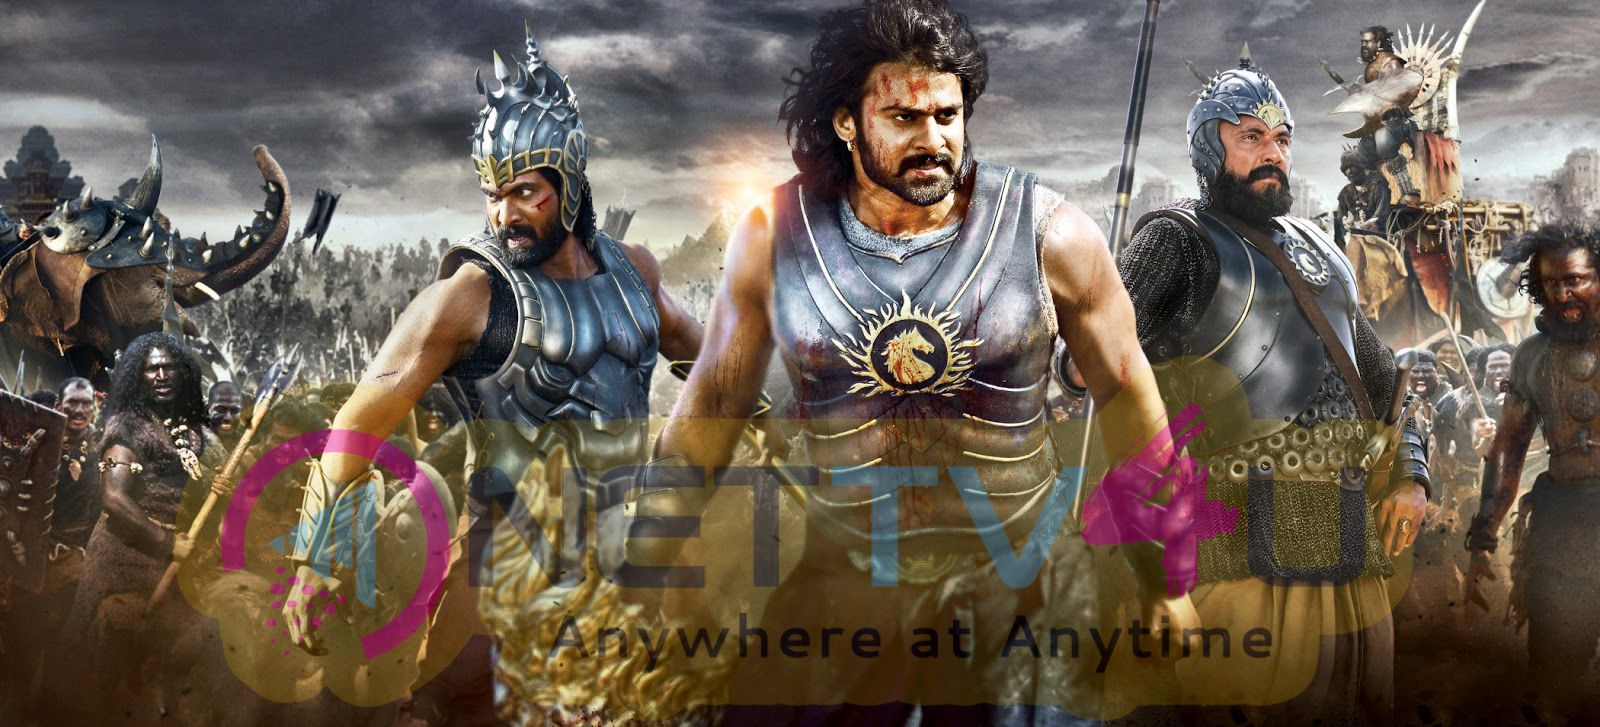 Latest Photos Of Kollywood Movie Bahubali